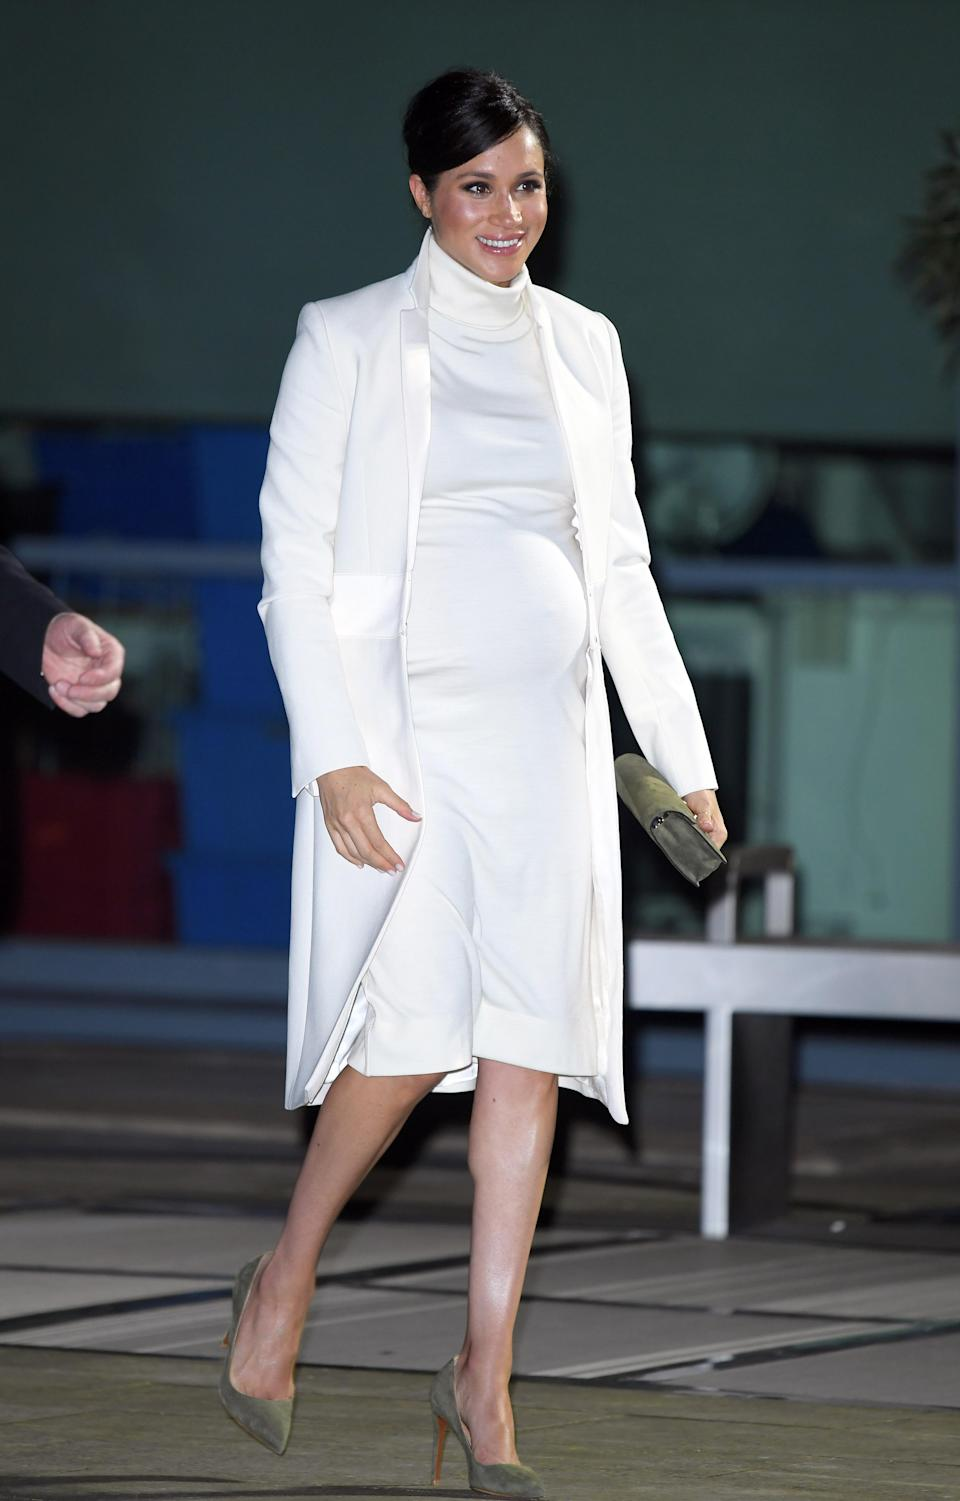 It's been a rollercoaster month for the 37-year-old Duchess of Sussex, who is seven months pregnant with her first child, with her father releasing a letter she hand wrote to him, begging him to stop victimising her in public. [Photo: Getty Images]